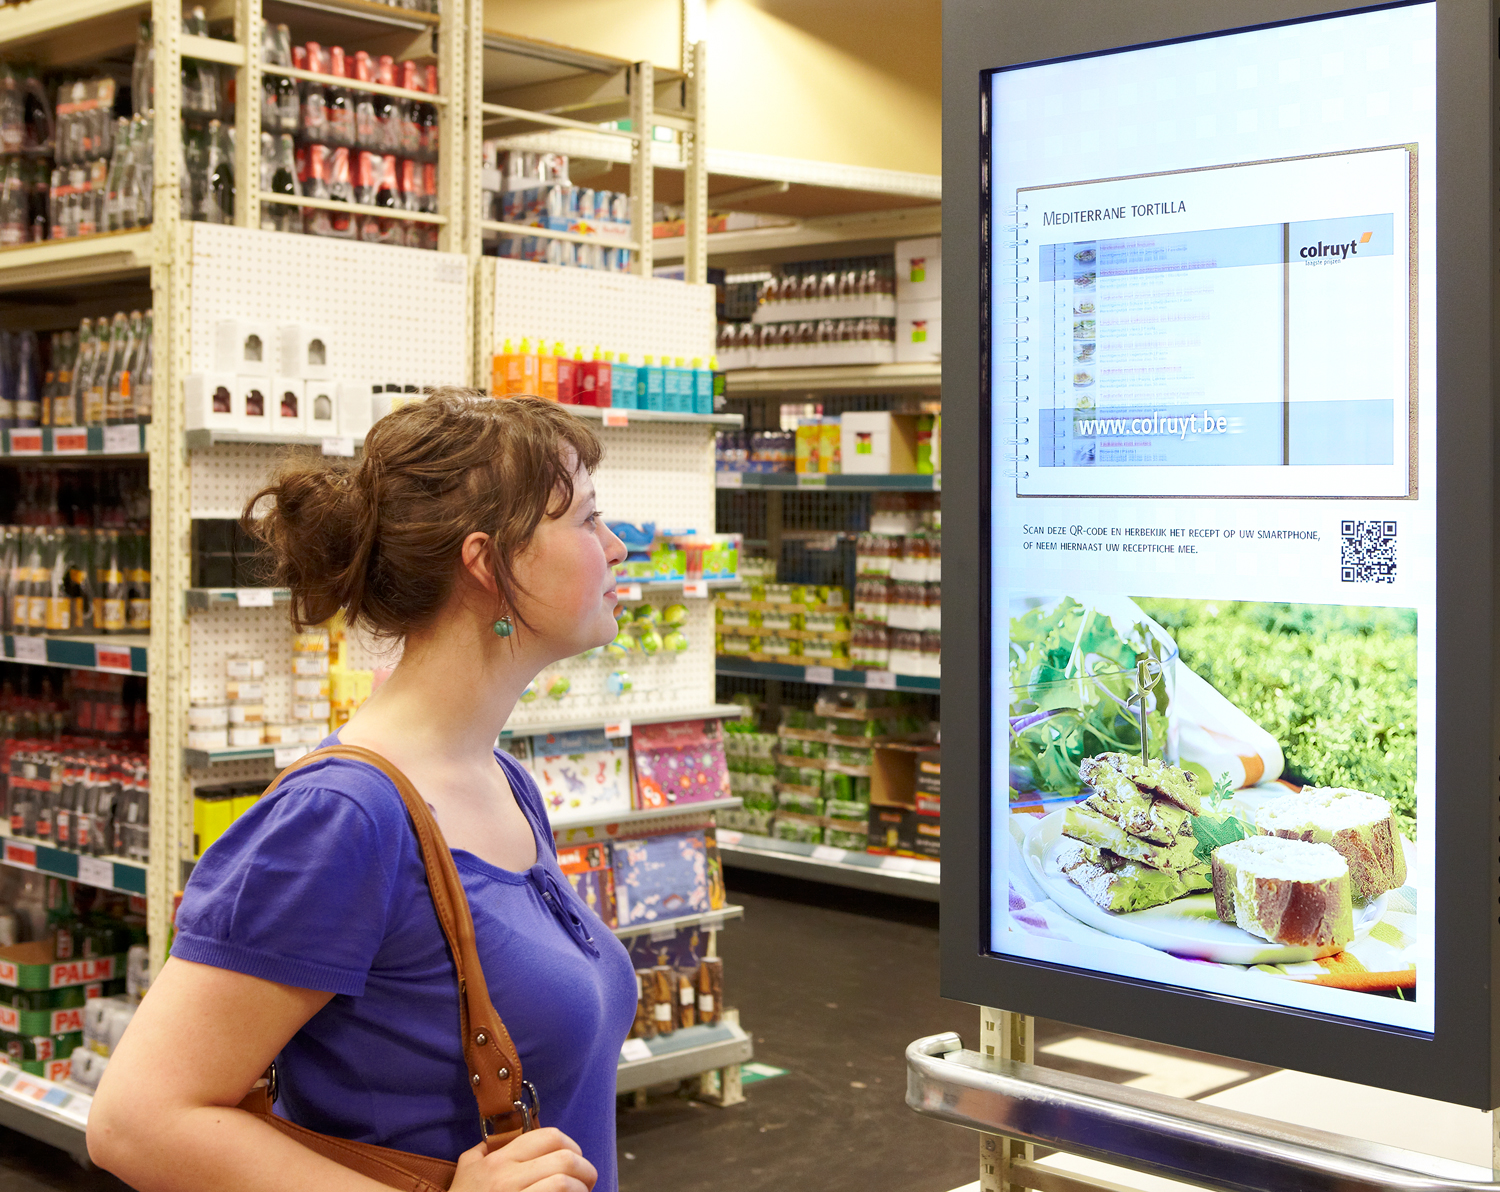 Colruyt serves up digital signage for effective customer communication